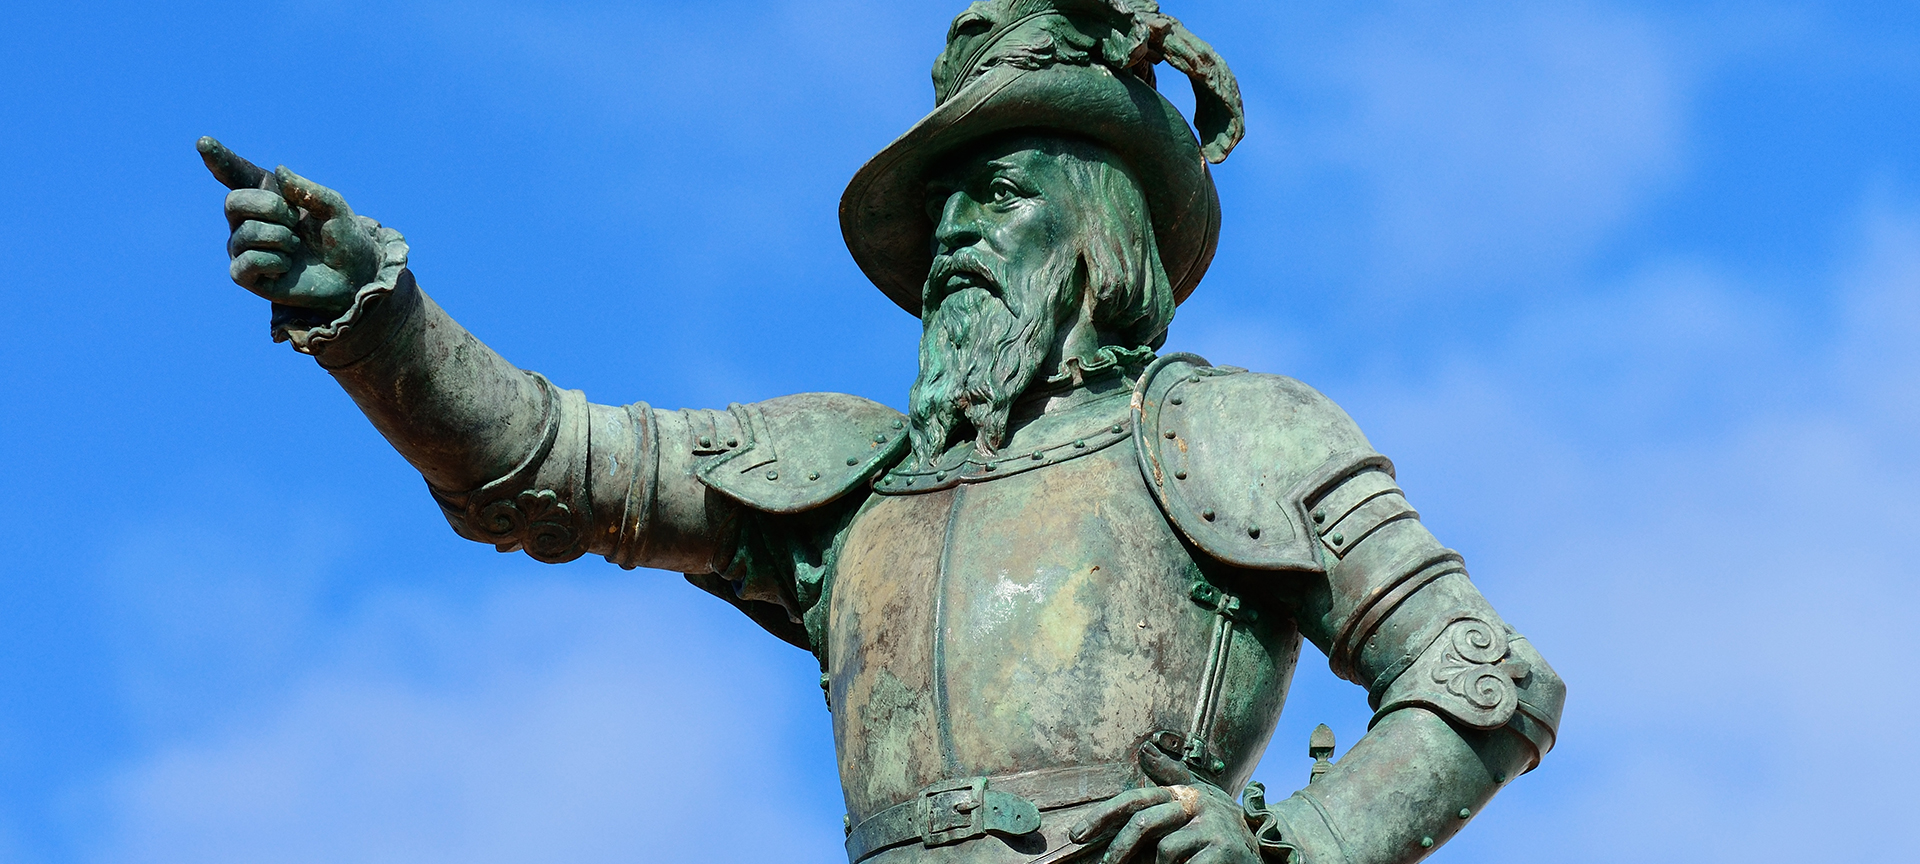 """On 2nd April 2 1513, Spanish explorer Juan Ponce de Leon and his crew sailed three ships north along the coast of present day Northeast Florida. Ponce de Leon planned to claim the land for Spain, and he looked for a good place to anchor so they could go ashore. At noon, his navigator Anton de Alaminos used an astrolabe, the most advanced equipment then available, to take a reading of their location. It was """"30 degrees and eight minutes"""", slightly south of present day Ponte Vedra Beach, at the northern border of the Guana Tolomato Matanzas National Estuarine Research Reserve."""